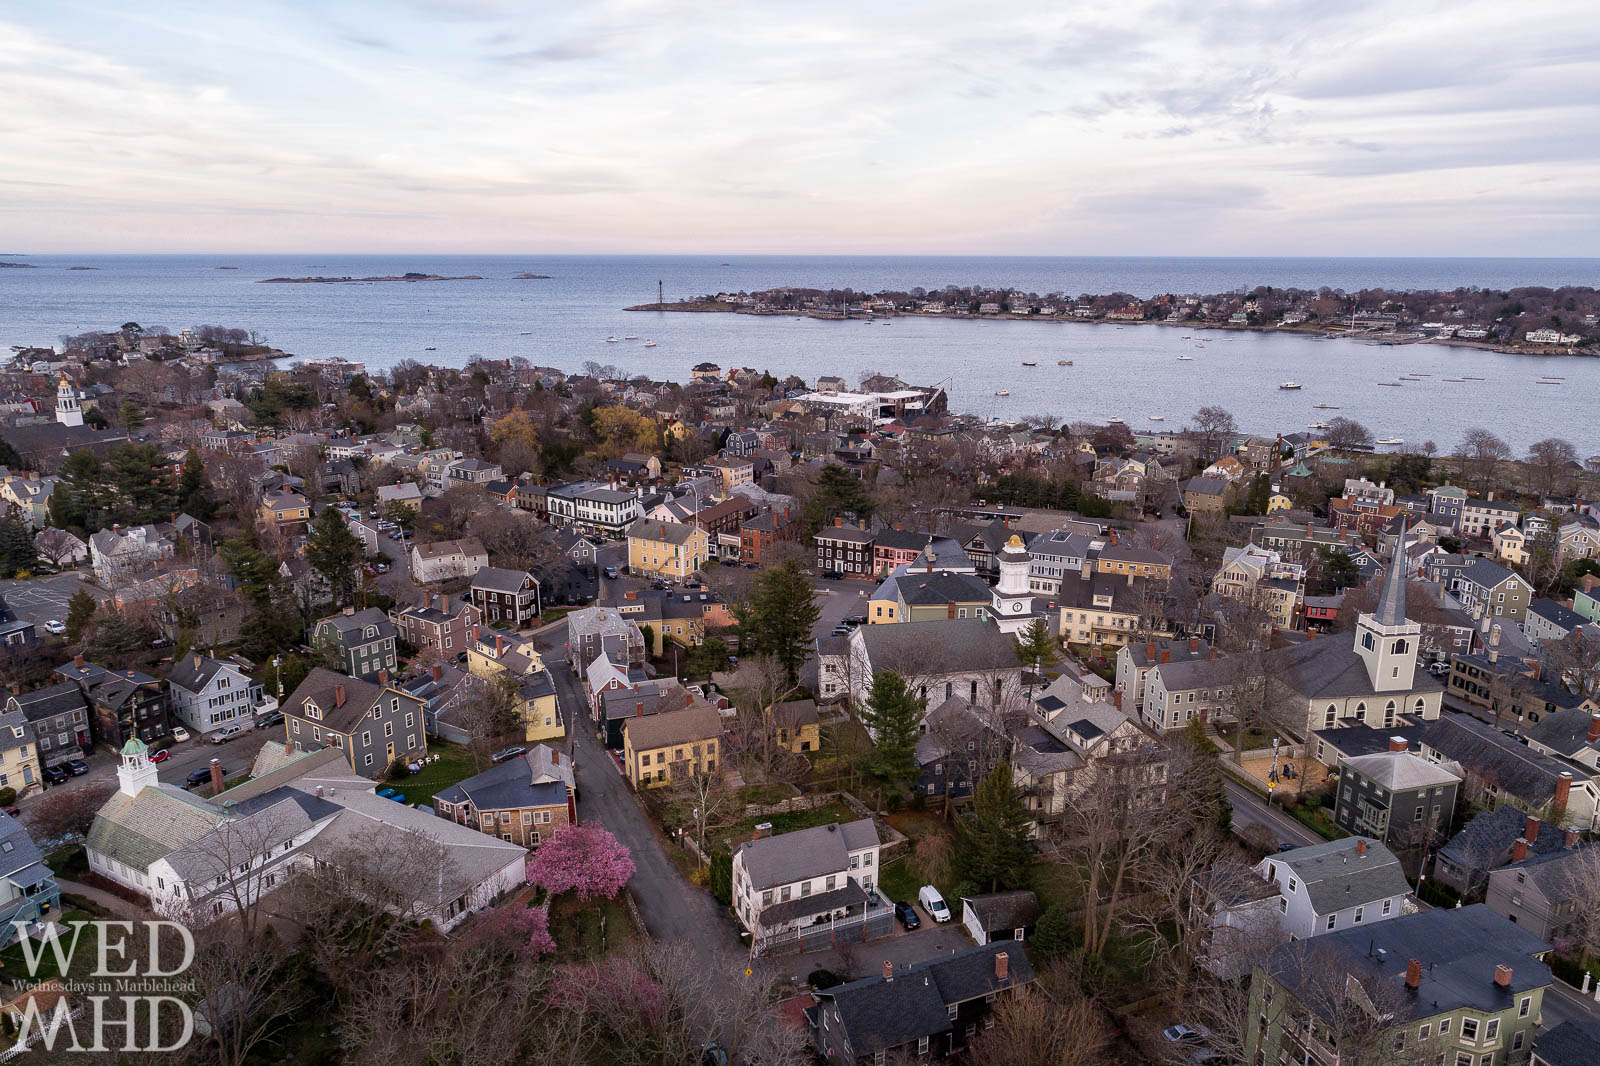 A hint of pink cherry blossoms is the first sign of spring on this April evening over Marblehead